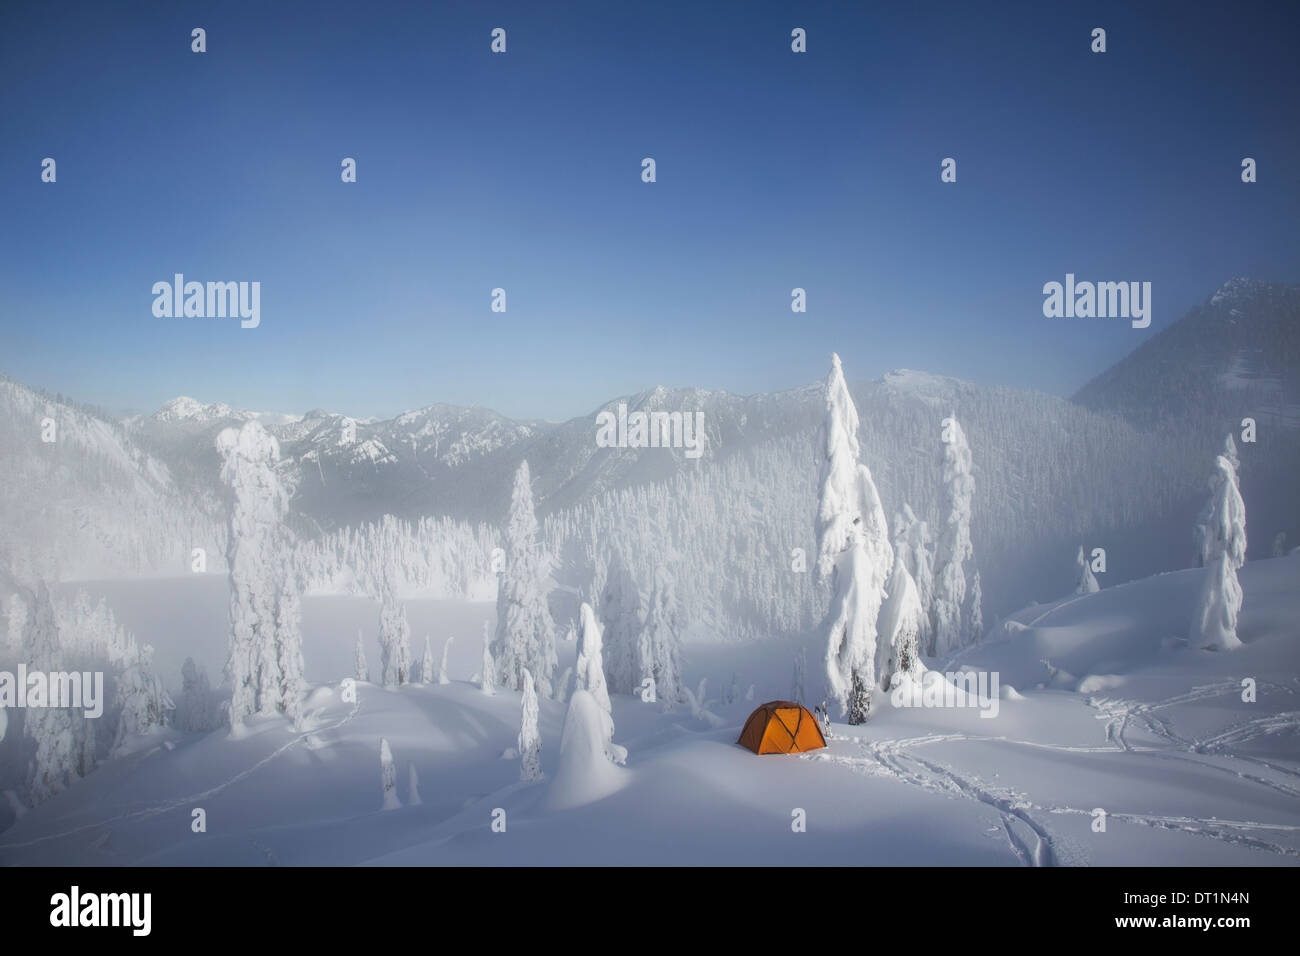 A bright orange tent among snow covered trees on a snowy ridge overlooking a mountain in the distance - Stock Image